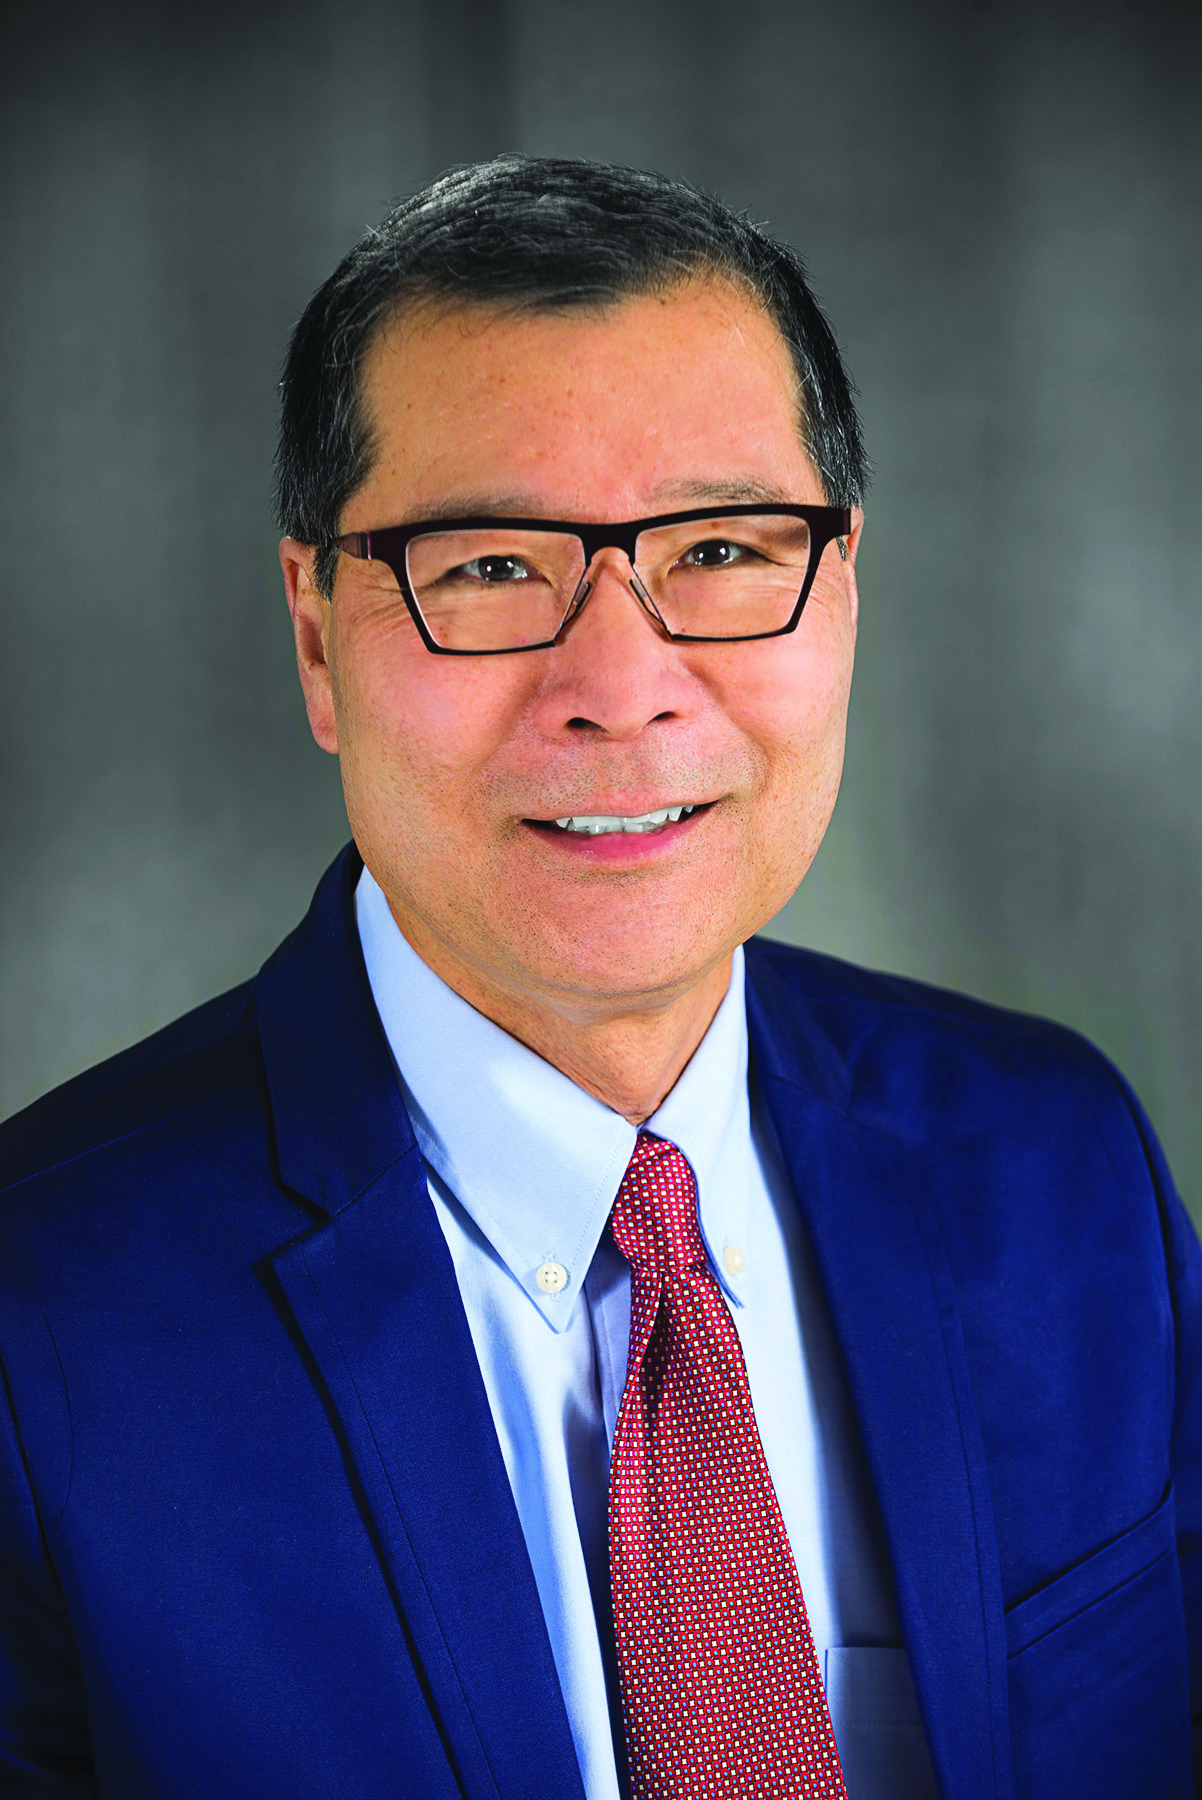 Robert Fujinami Appointed as New Vice Dean for Faculty and Academic Affairs